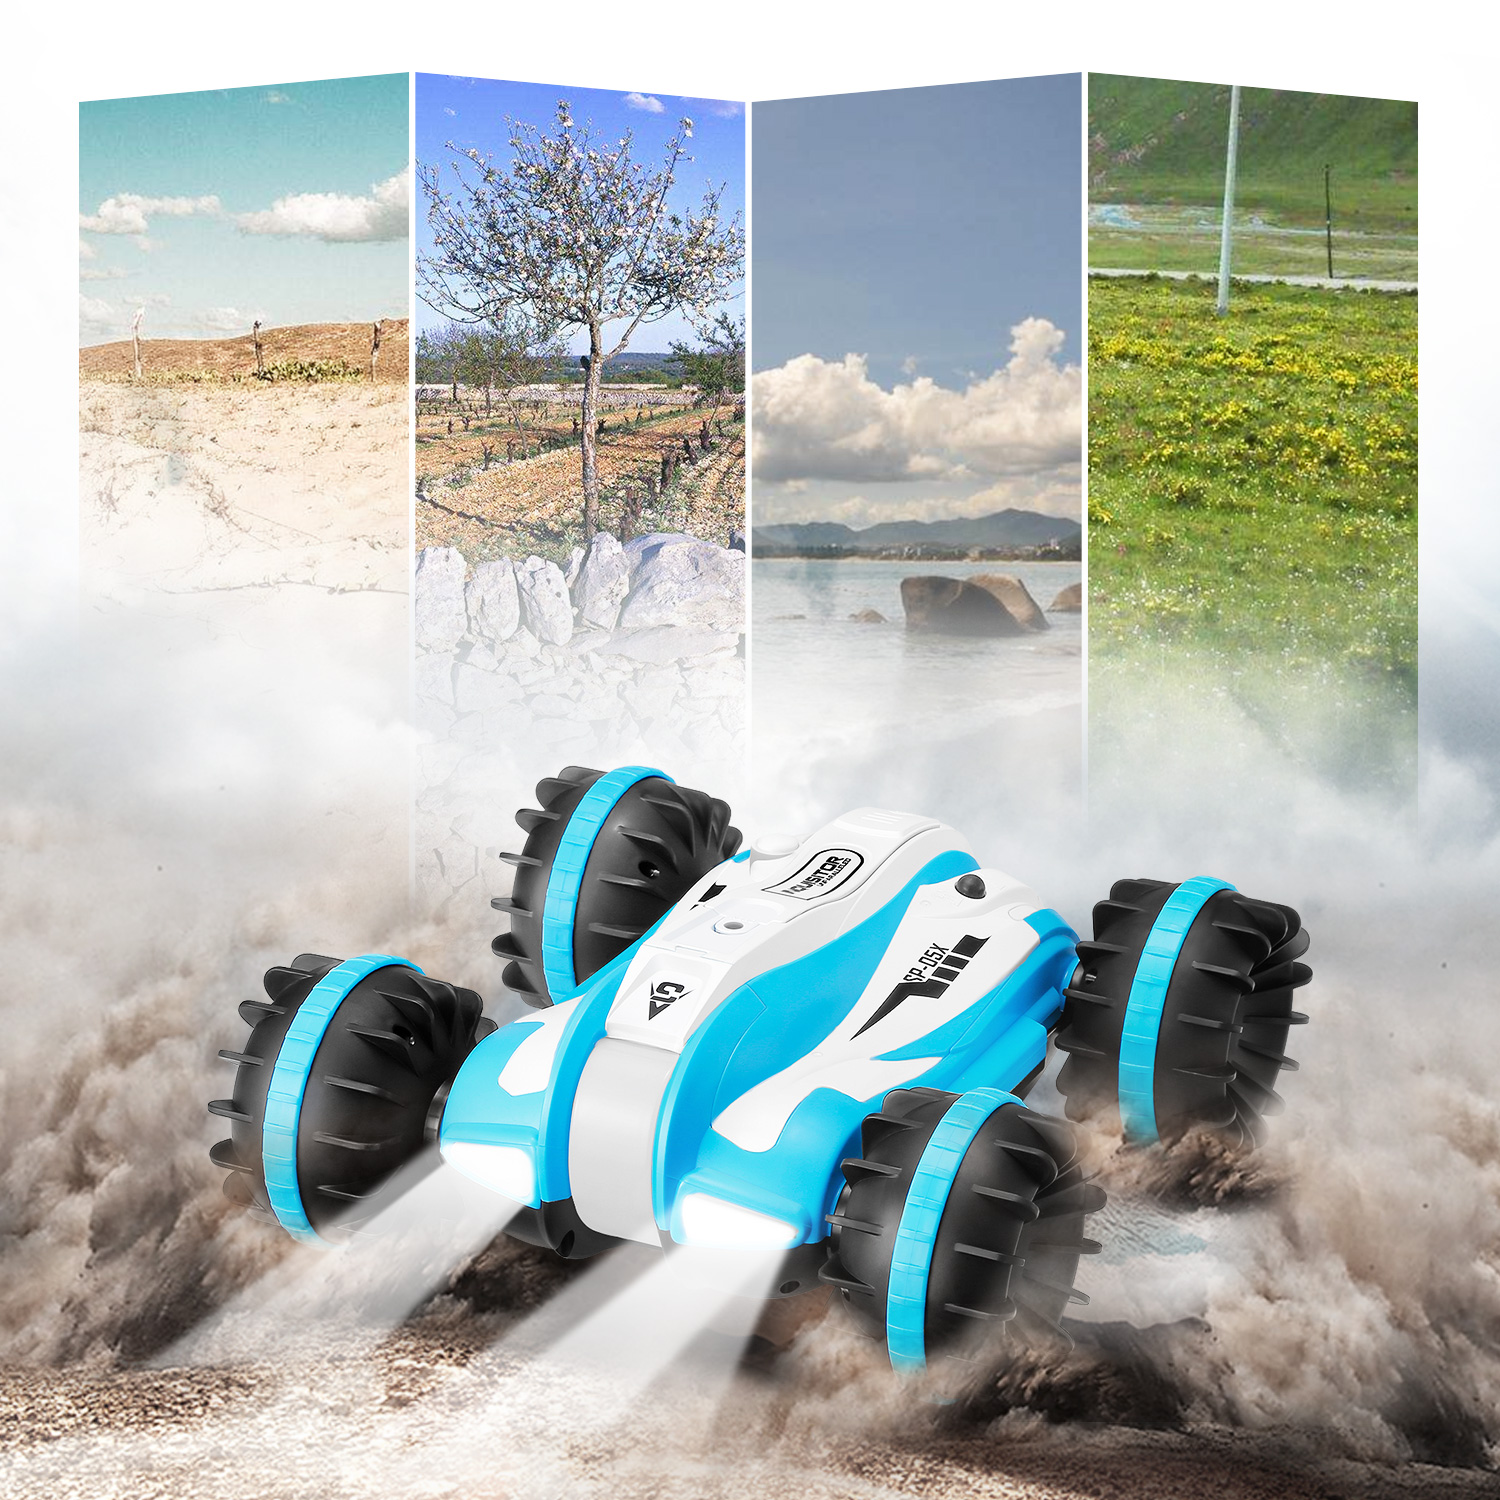 Powerful Design RC Cars 2.4GHz 6-Channel Amphibious Car 360-Degree Rotation Stunt Vehicle Toy Remote Control Toys Gifts